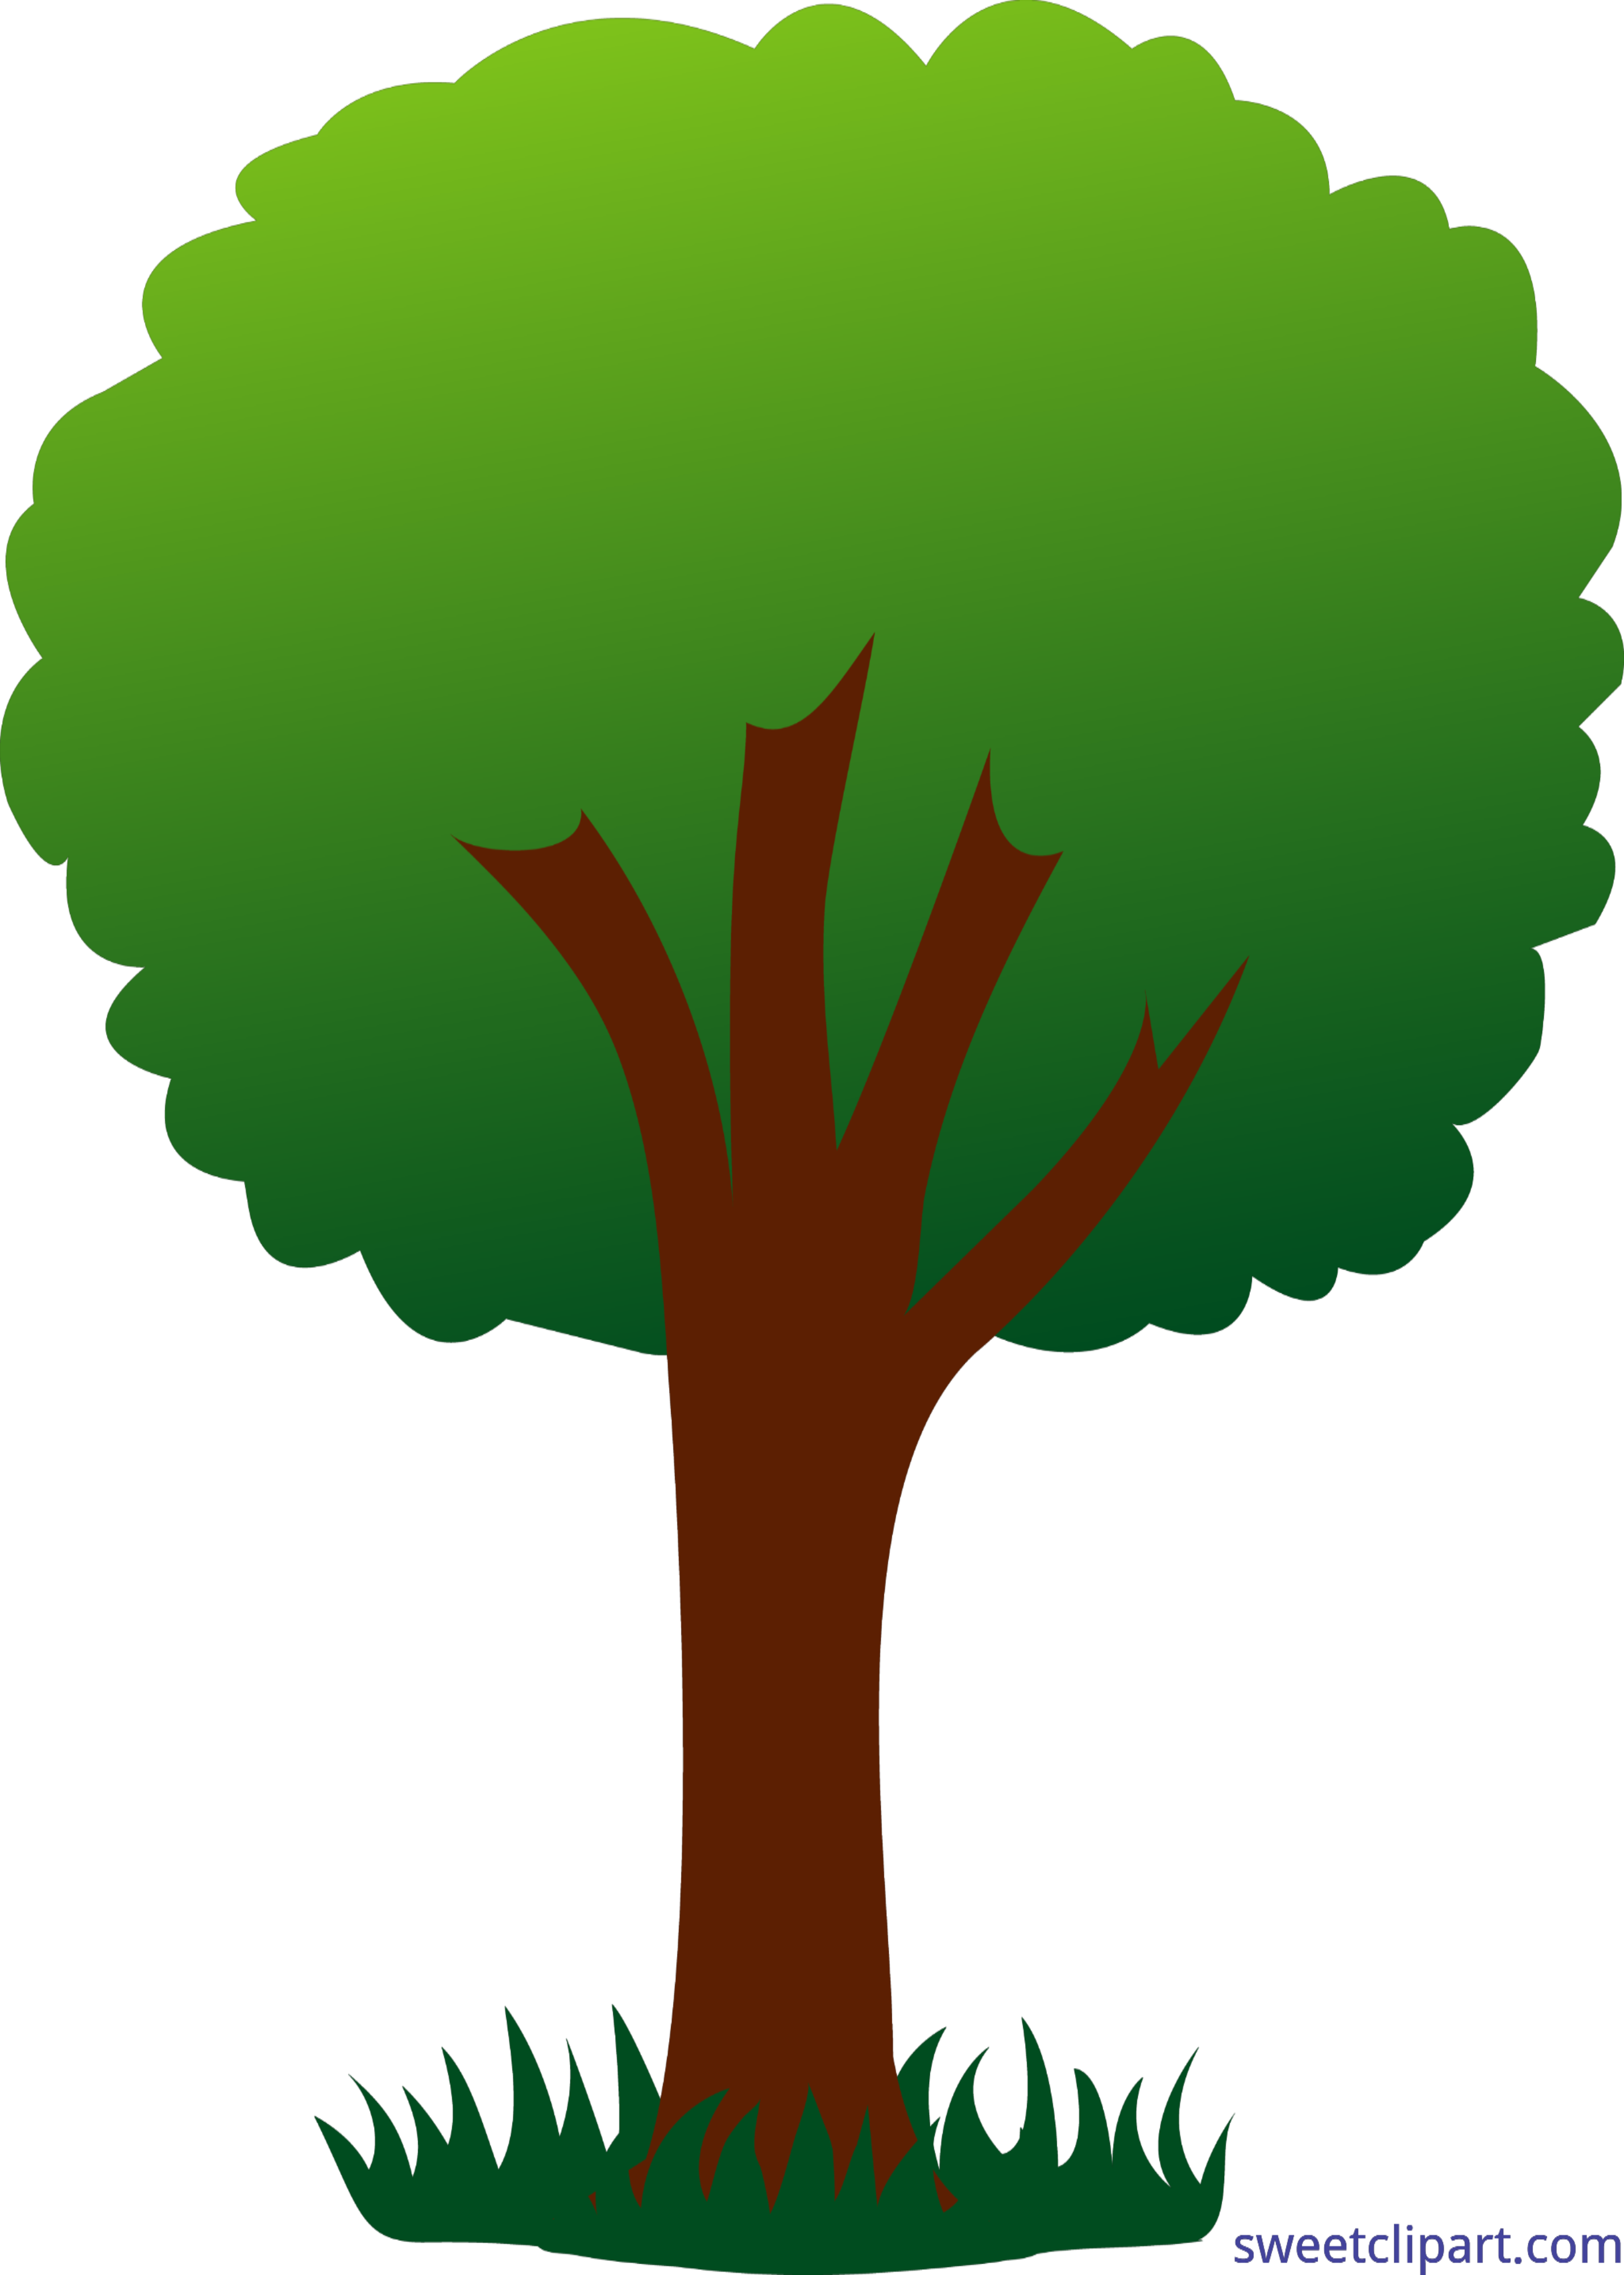 Nature clipart tree. Simple green clip art